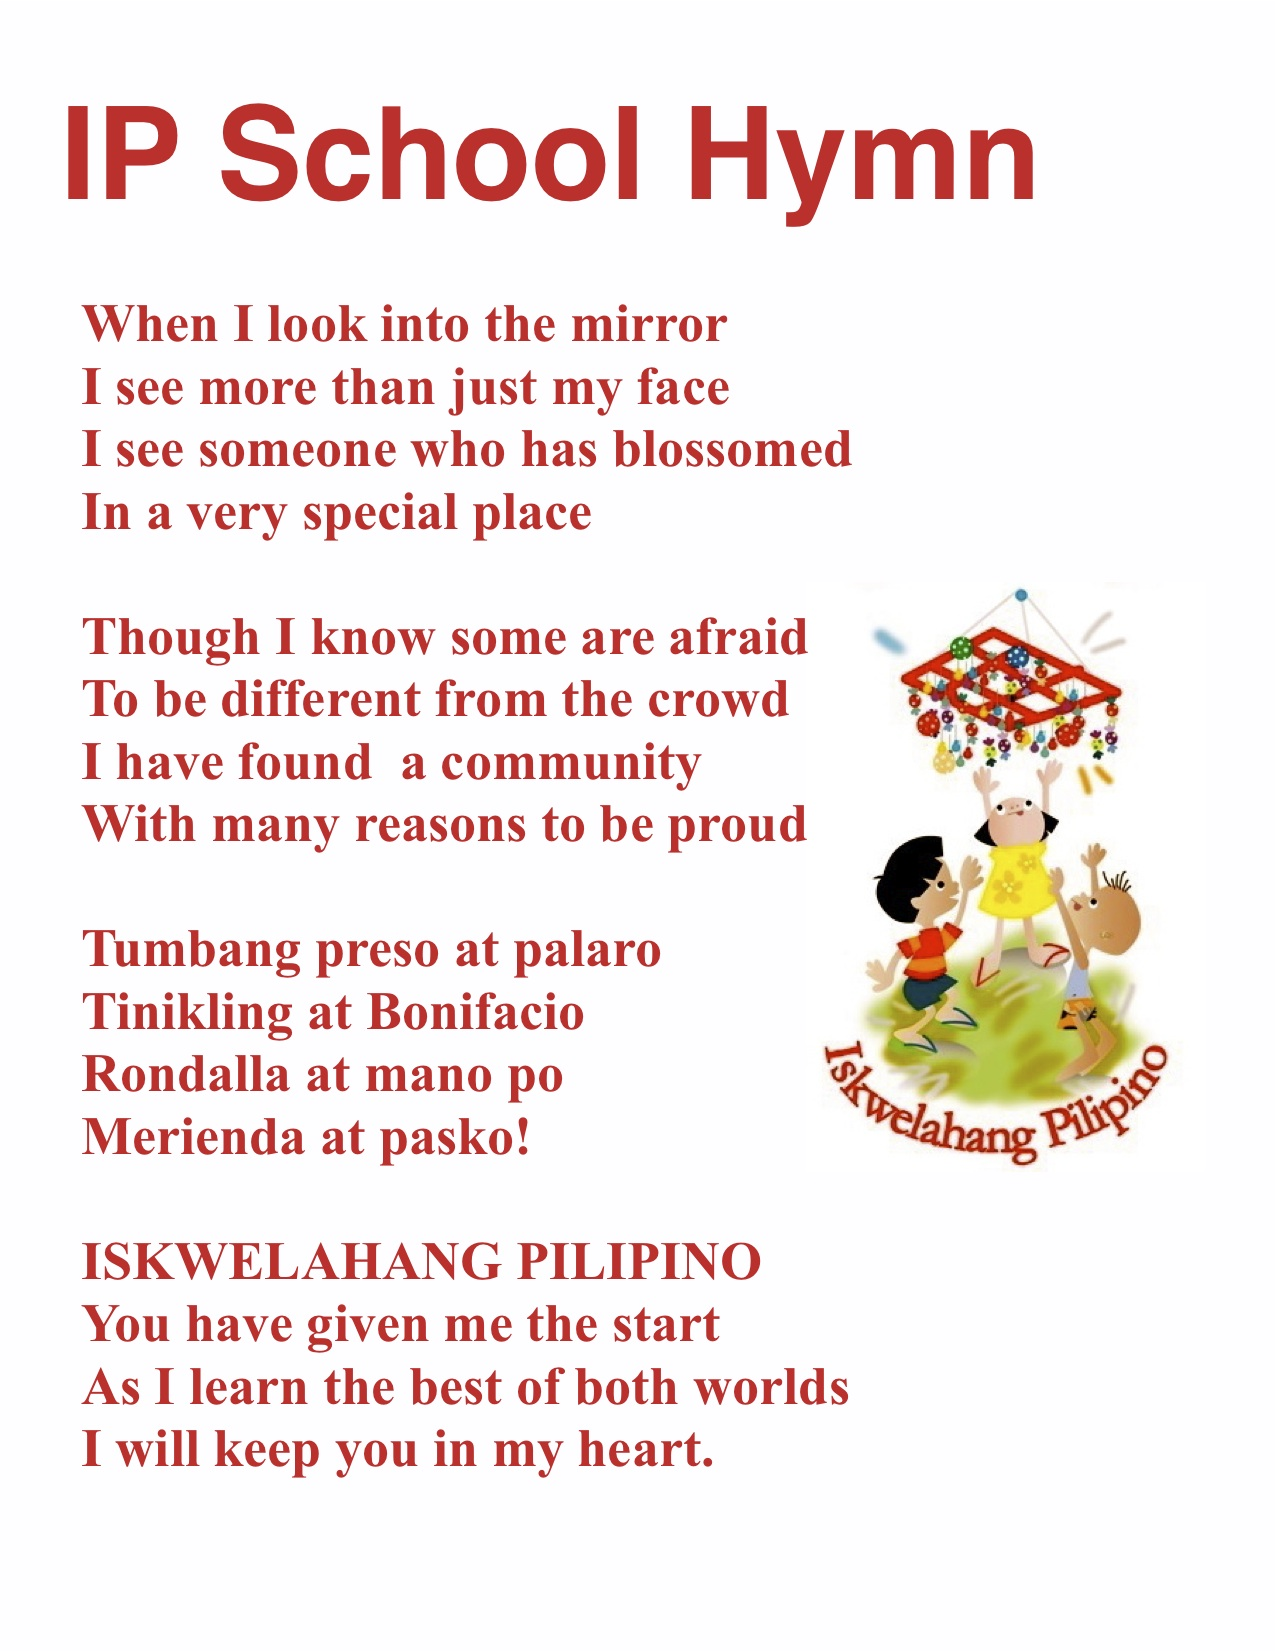 IP School hymn lyrics2j